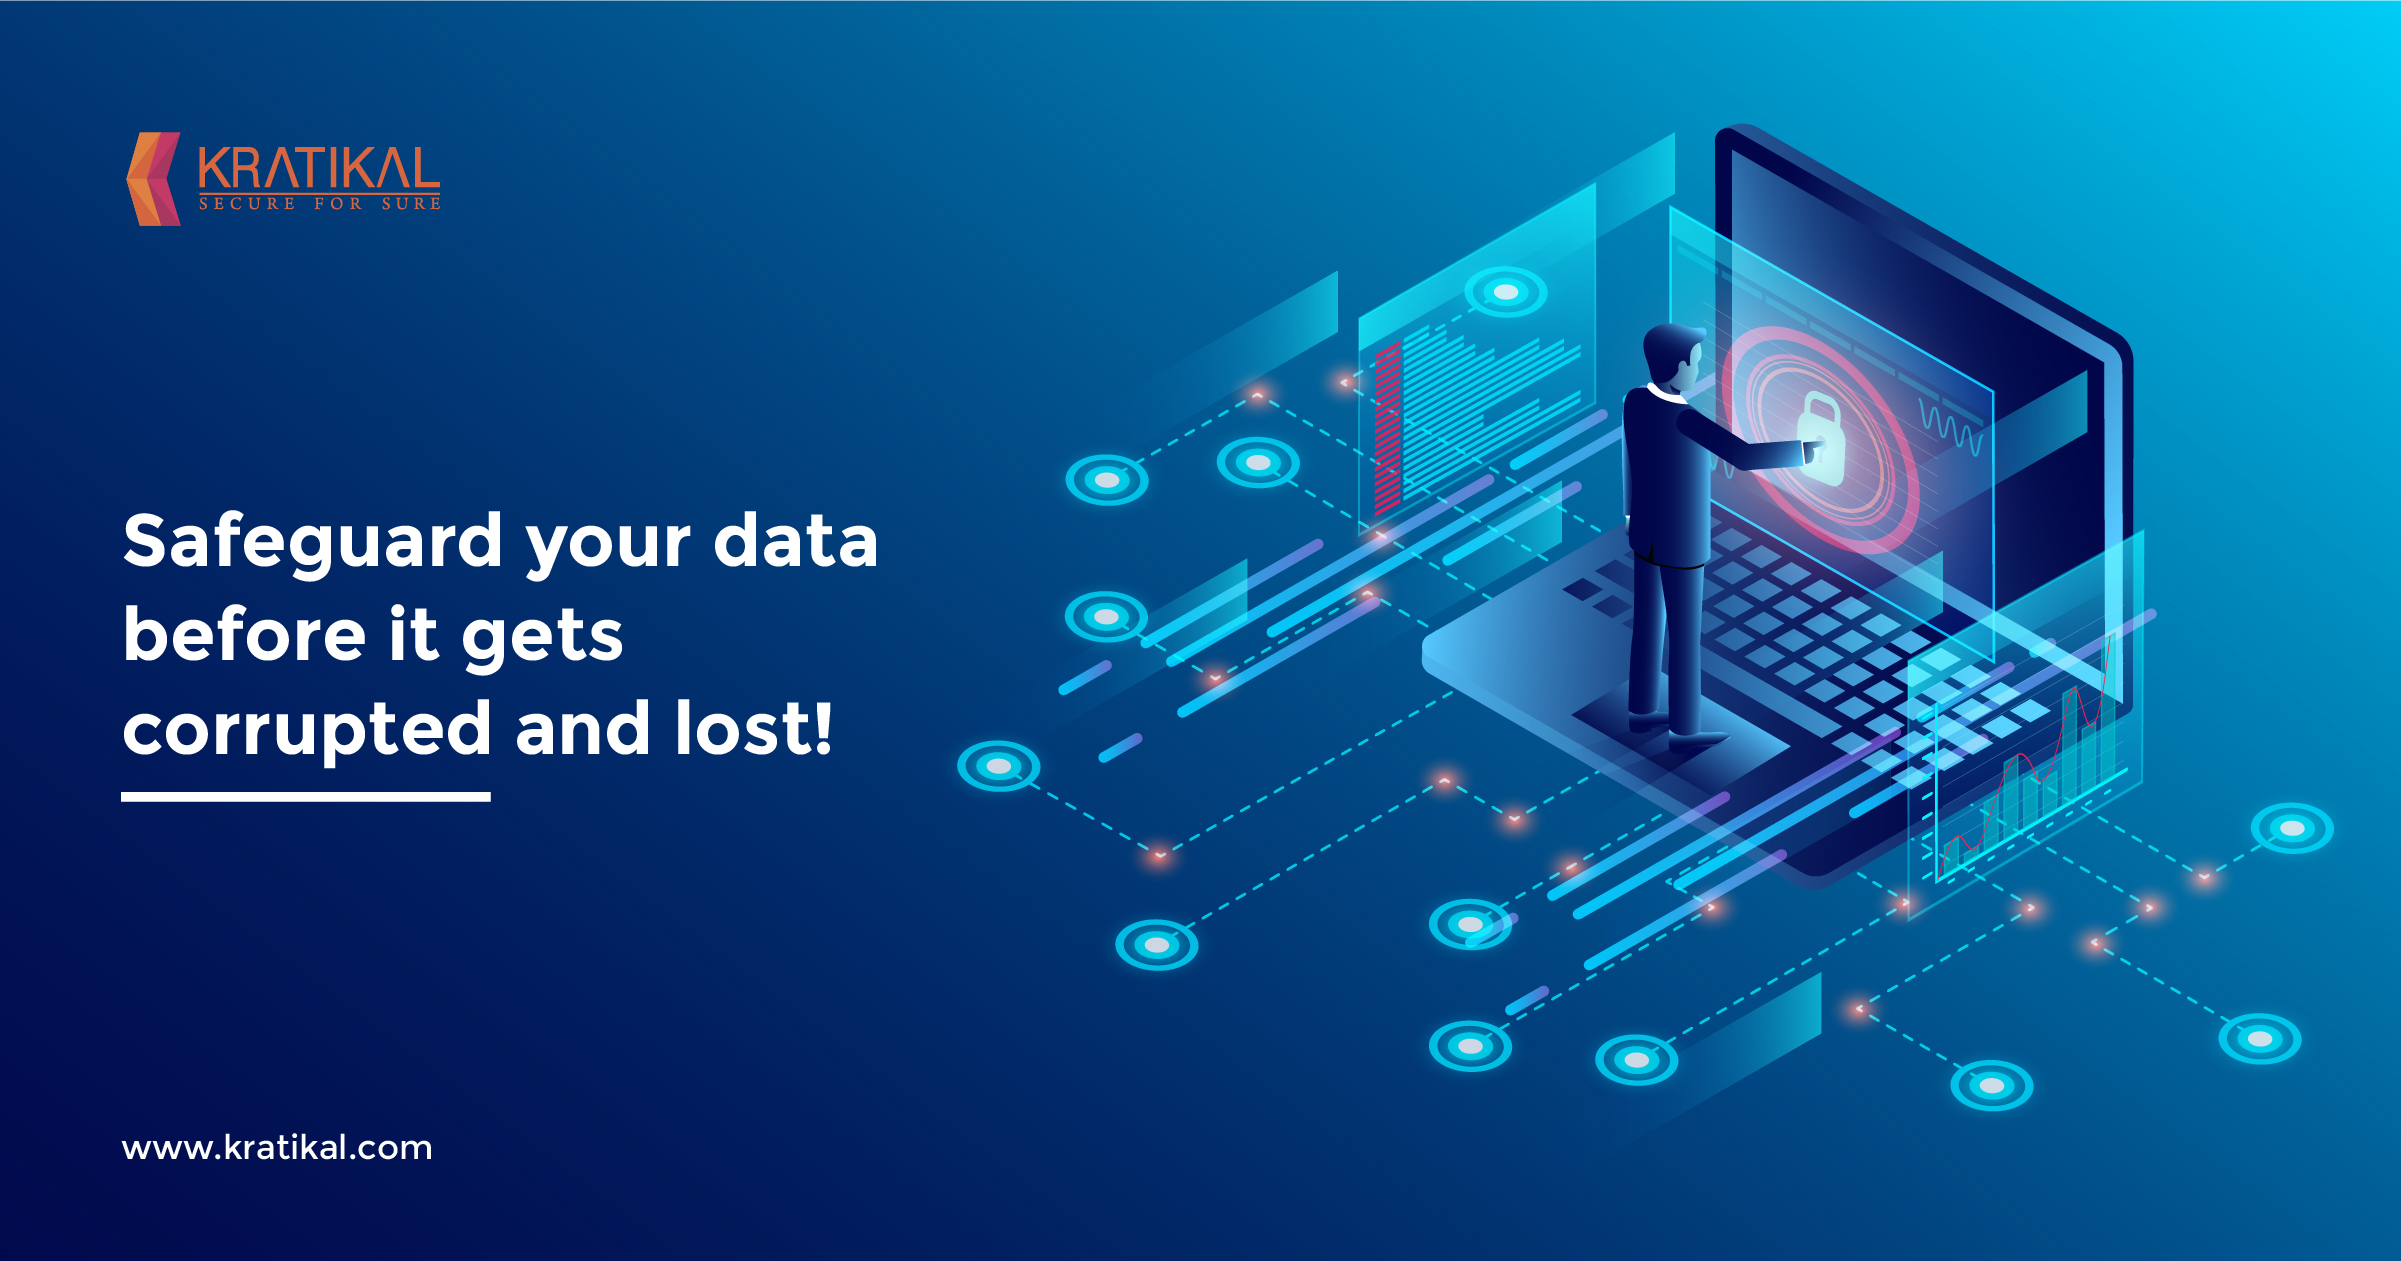 Safeguard your data before it gets corrupted and lost